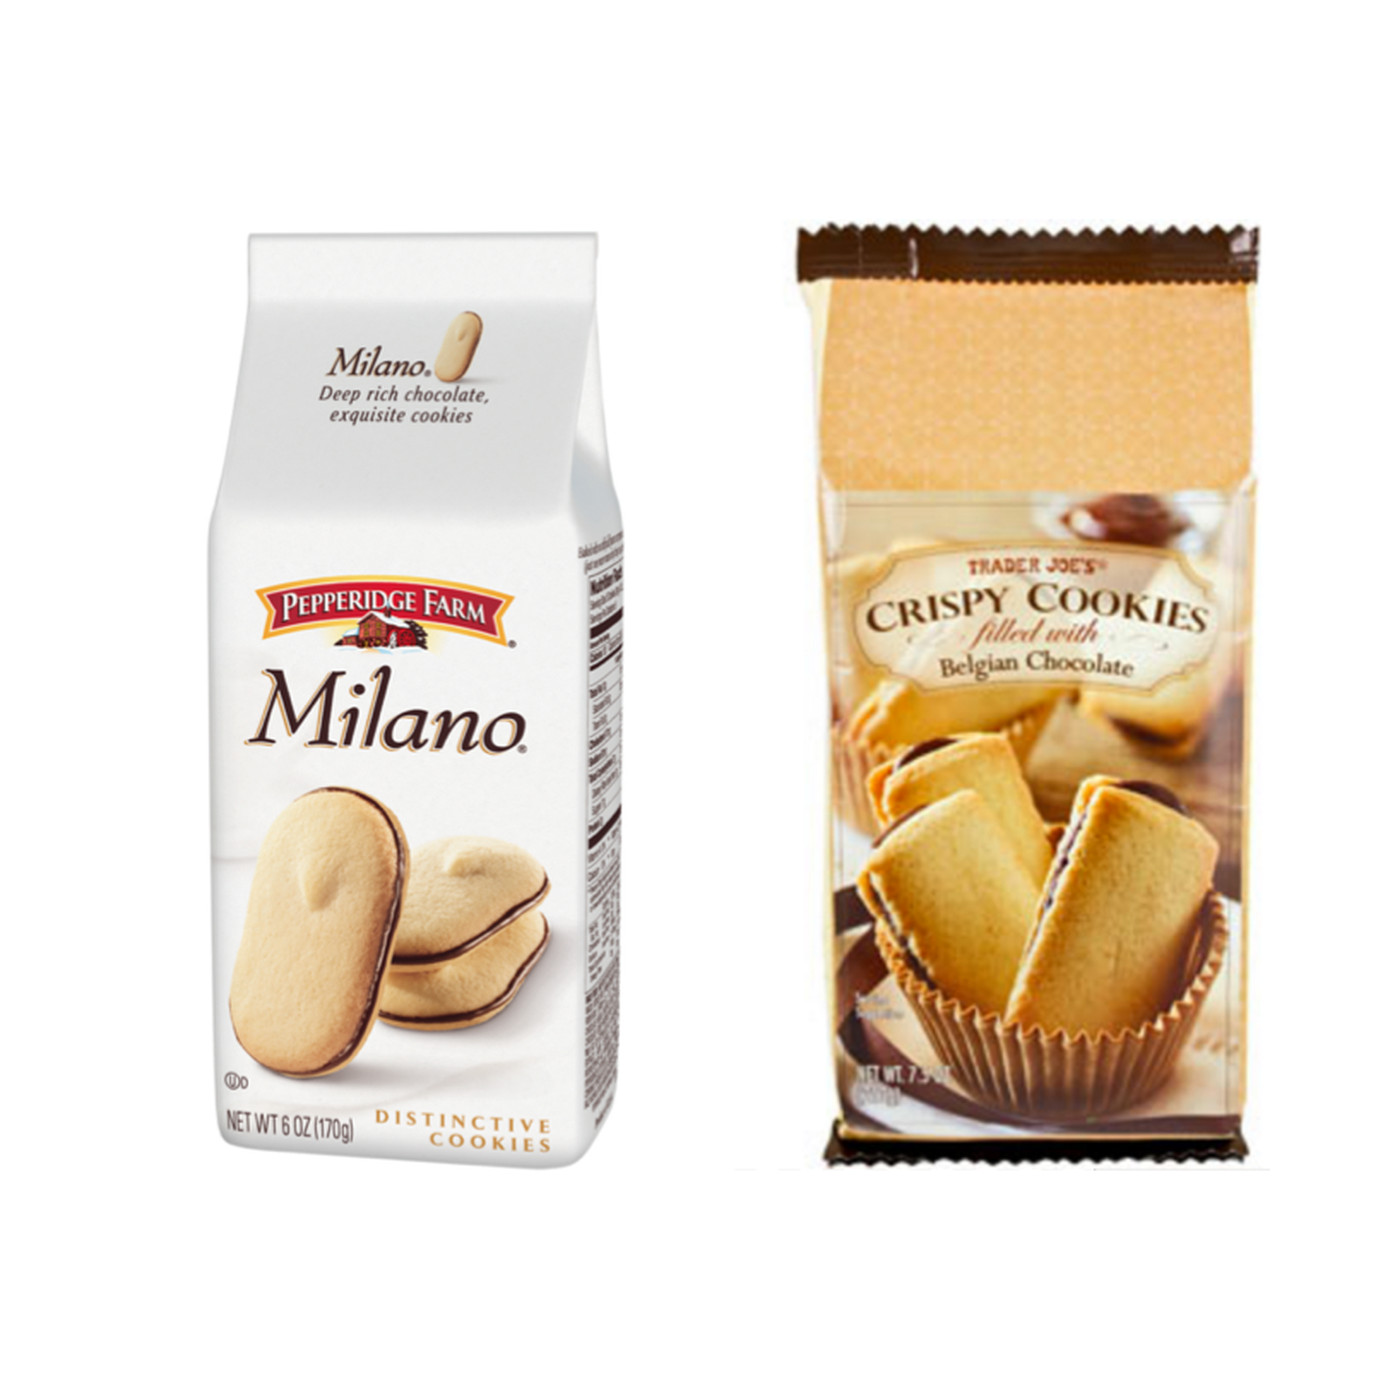 Pepperidge Farm Thinks It Owns The Concept Of Oval Chocolate Filled Cookies Vox